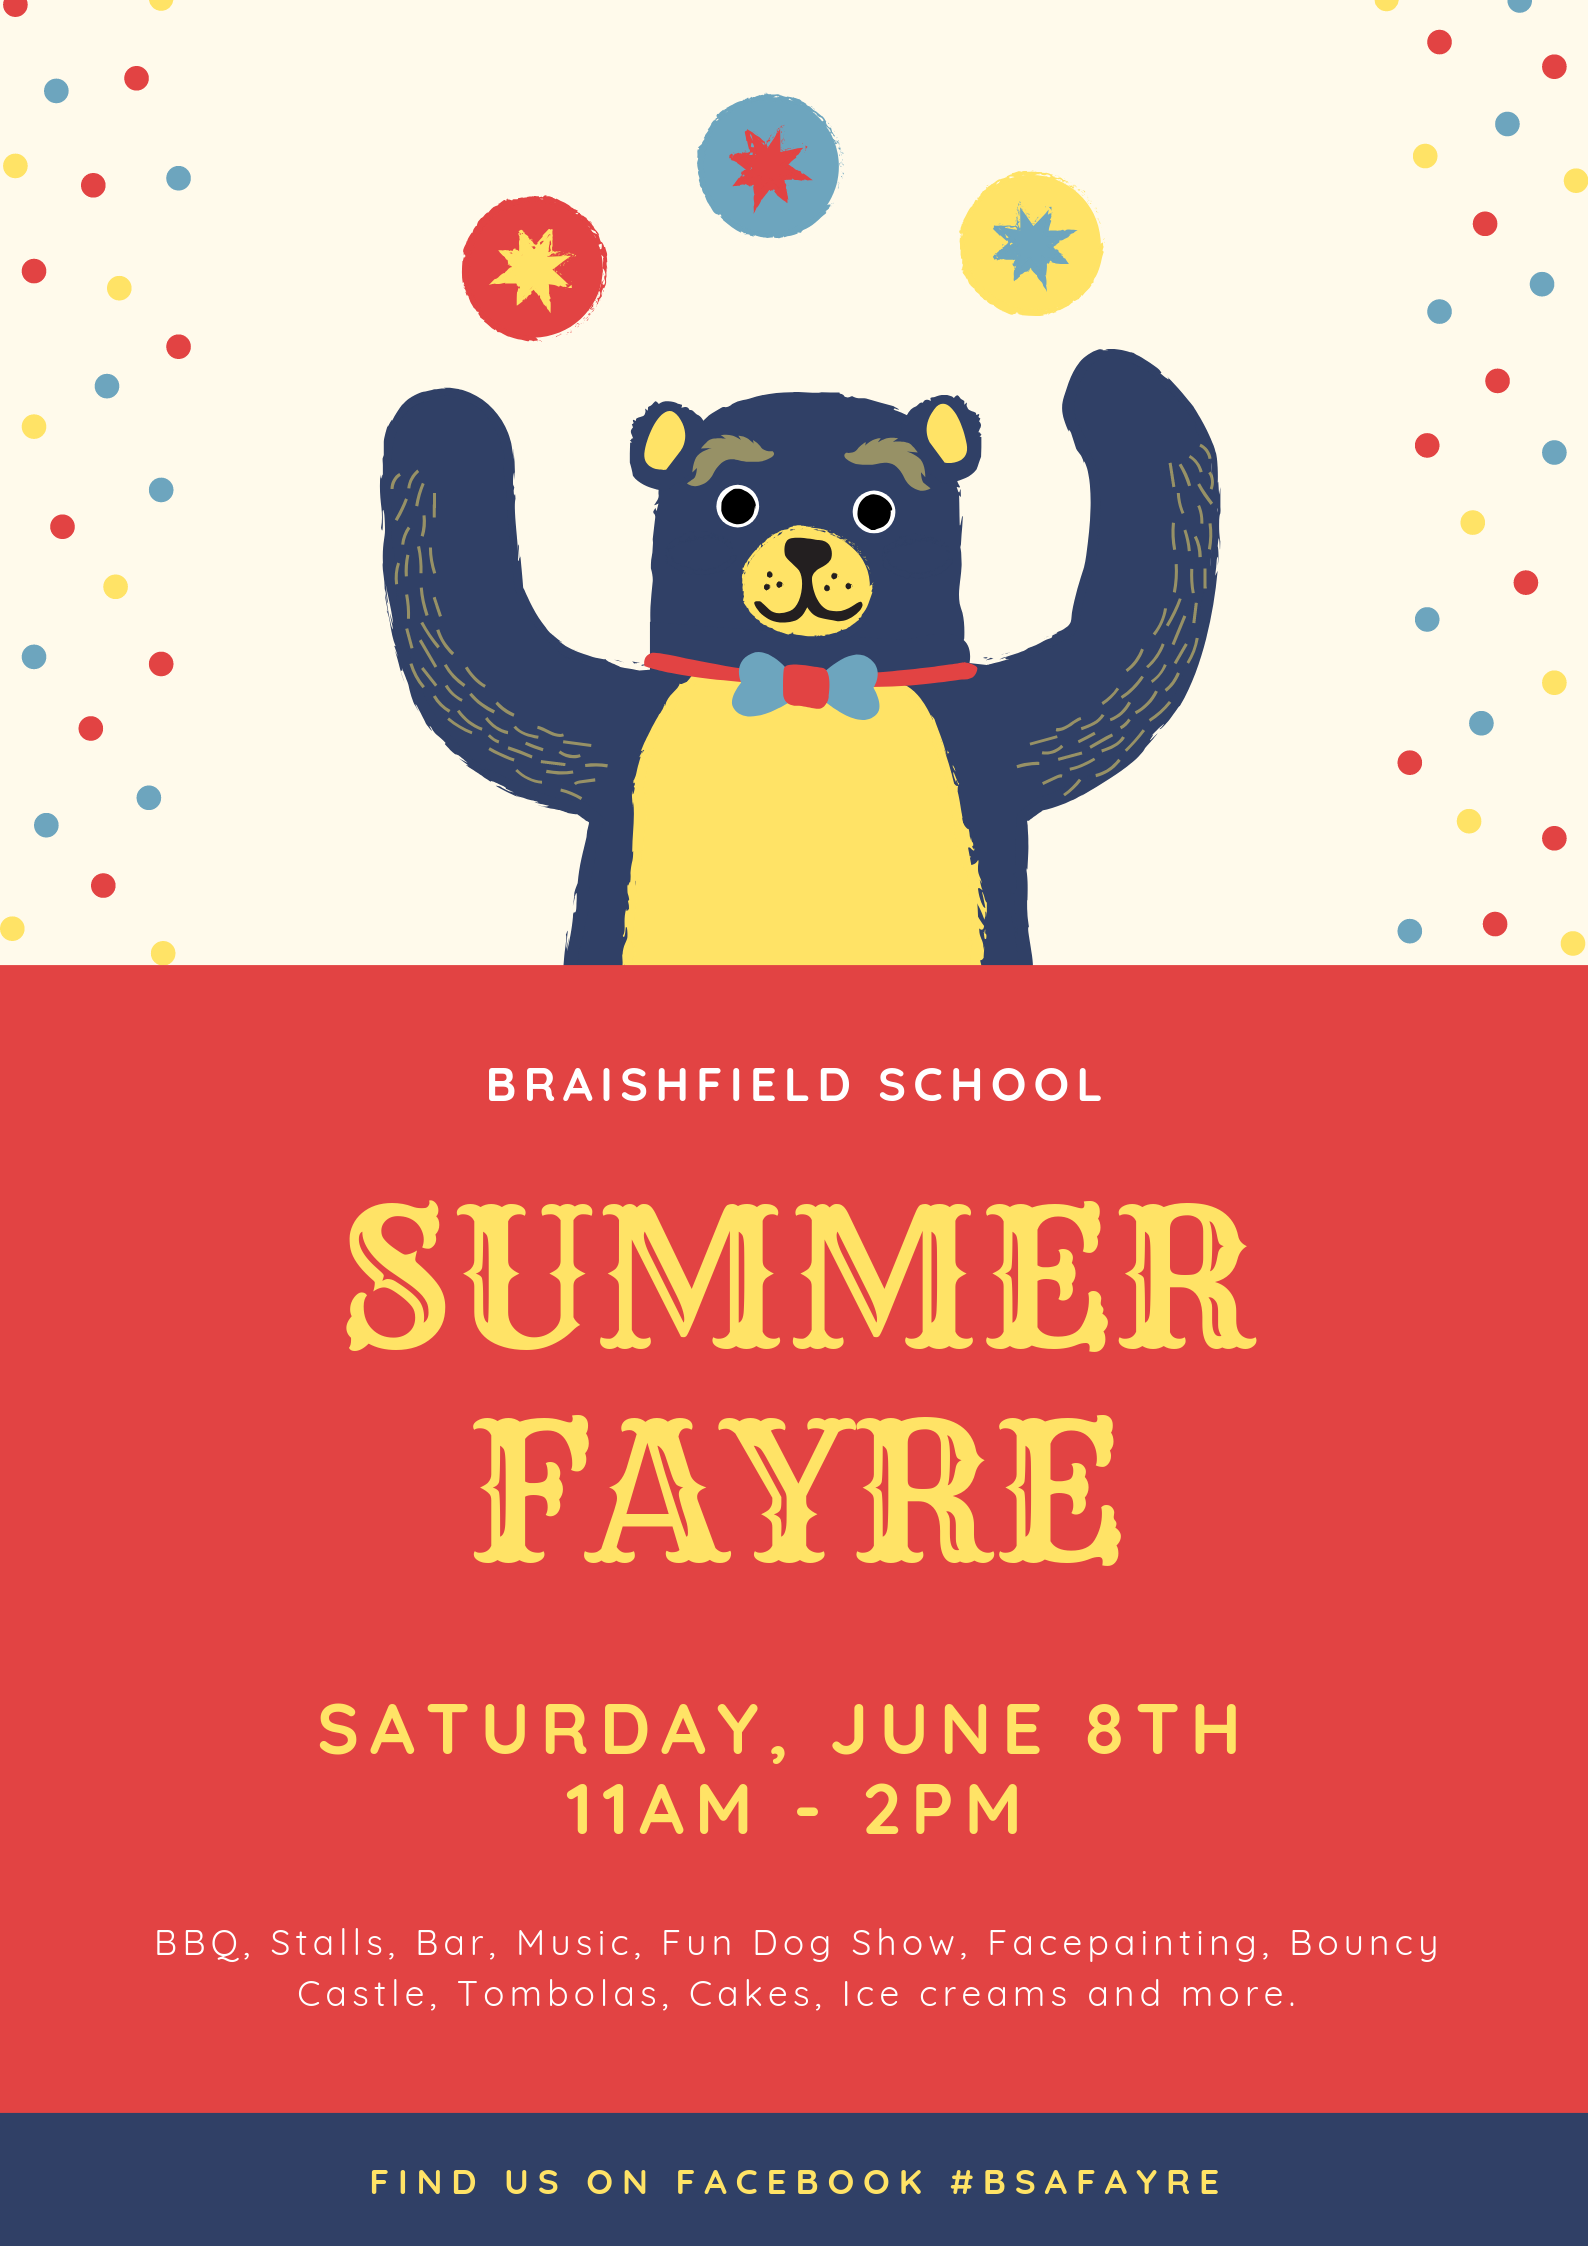 Braishfield Summer Fayre